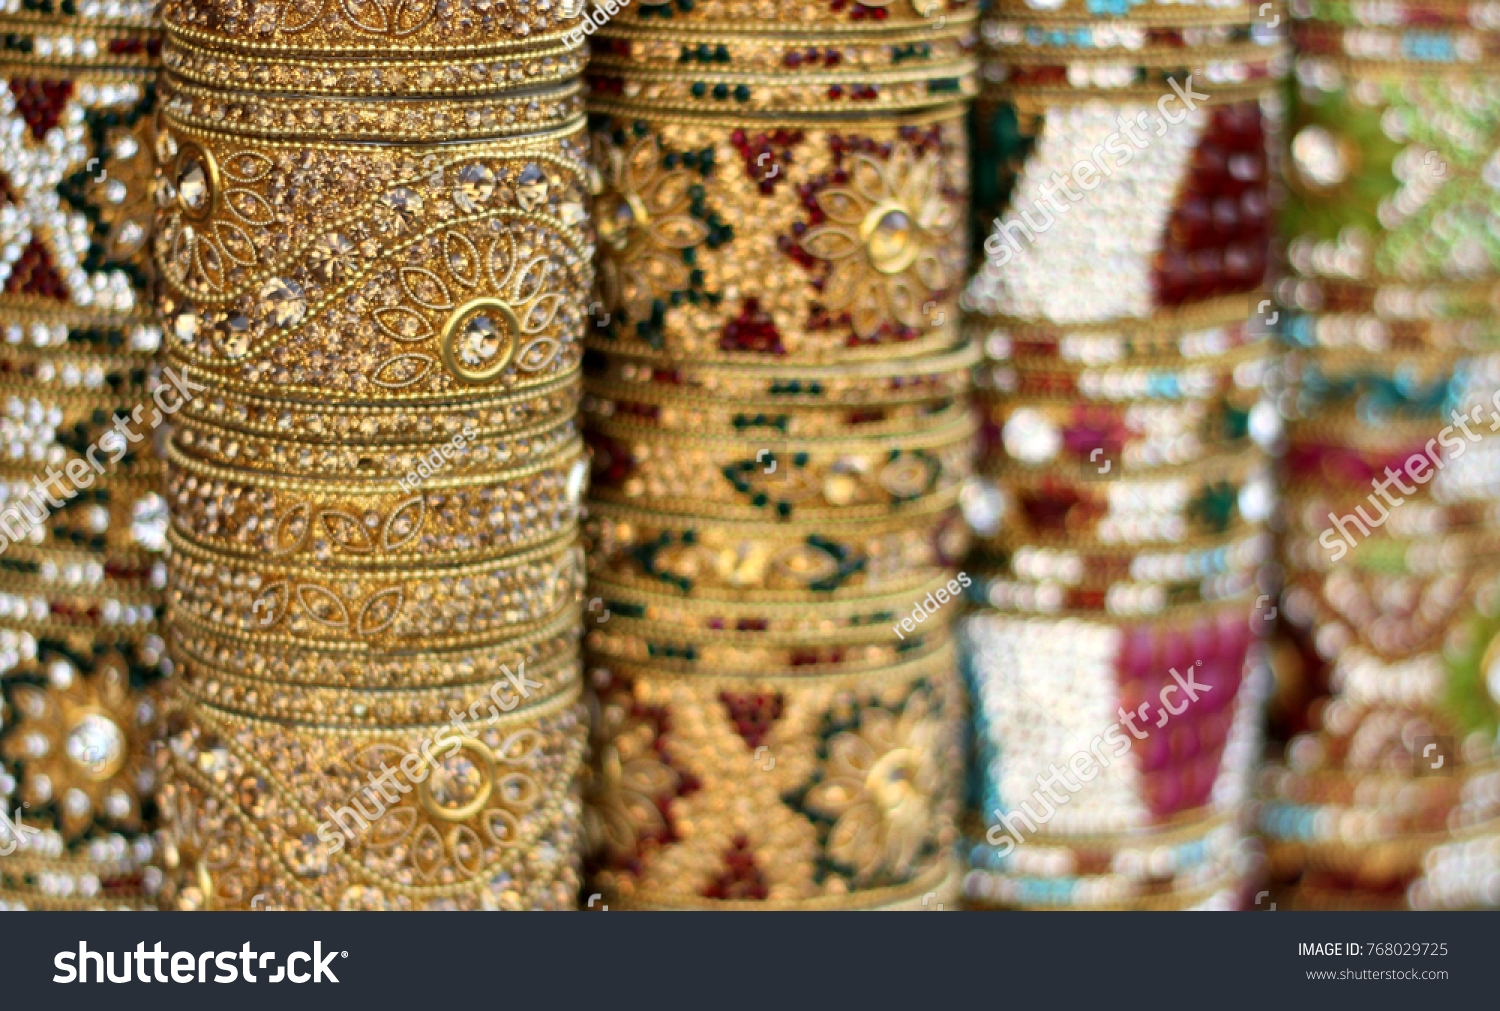 tourism laad are there destinations shop shops selling bazar partials one at than long many strip more in bangles bazaar telangana kilometer shopping bangle